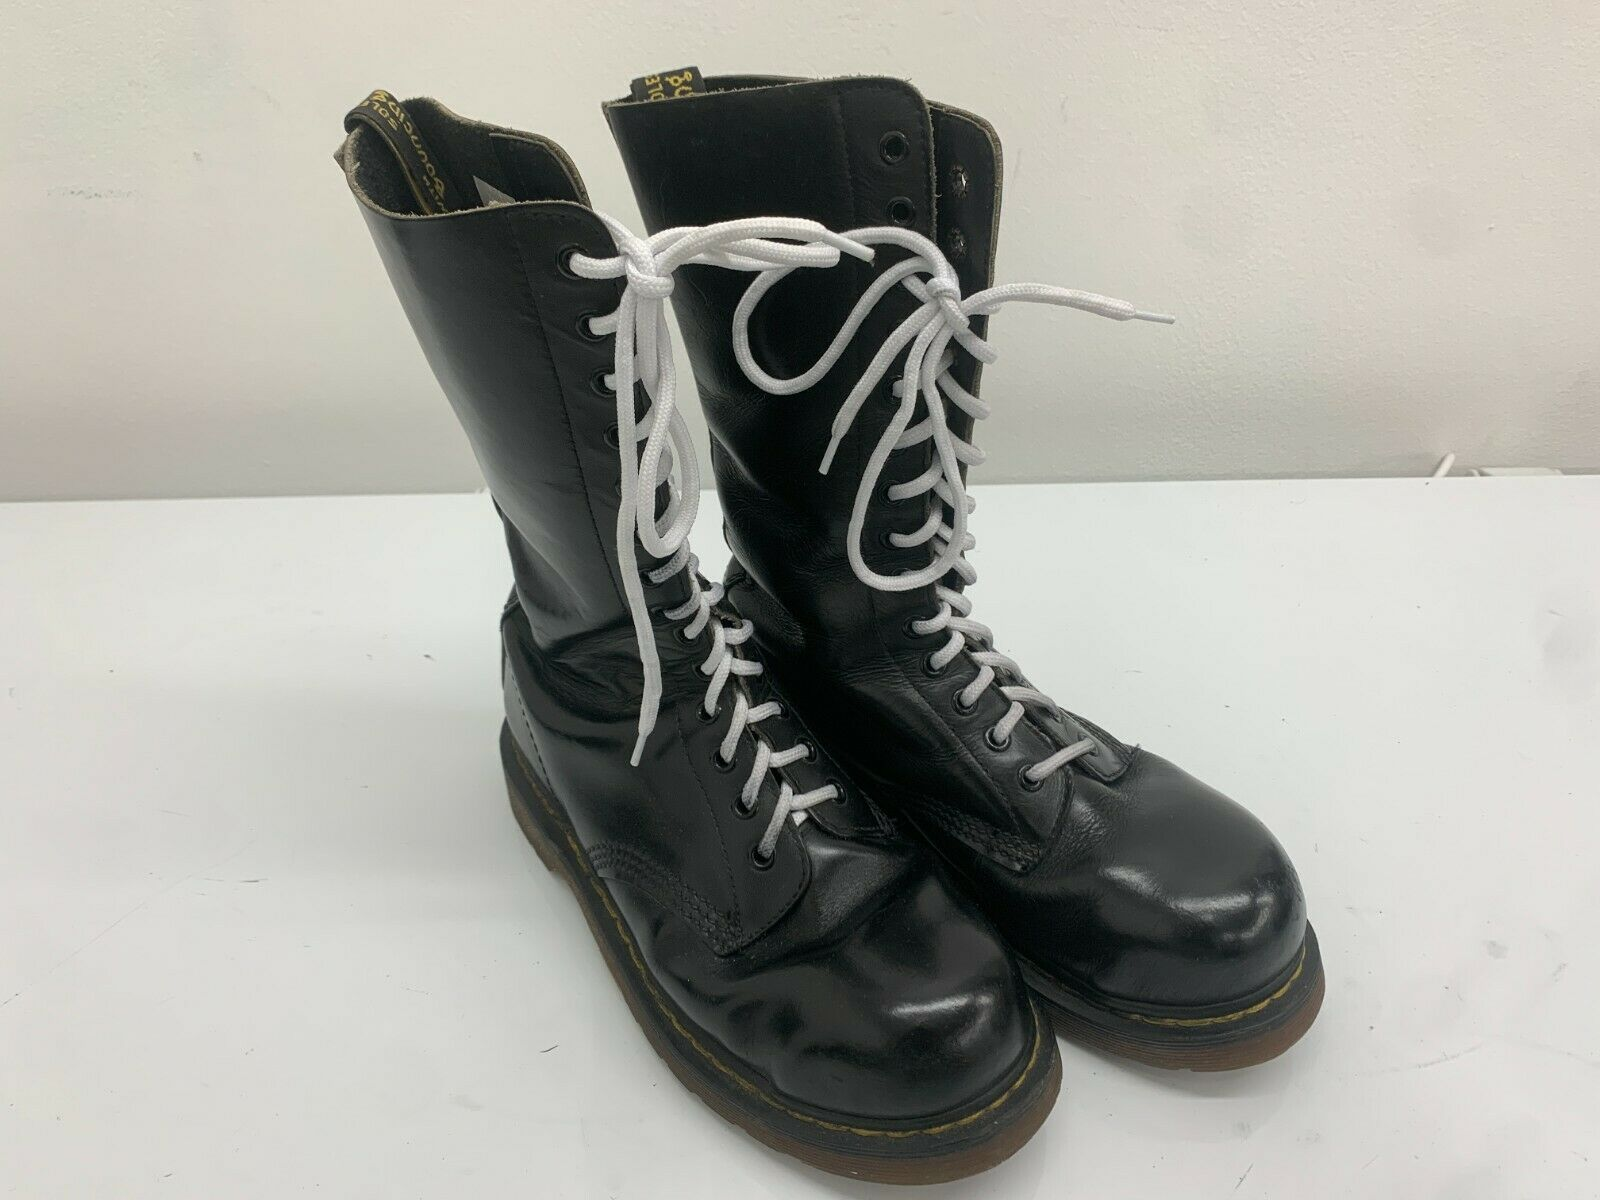 Dr Martens Boots 14 Eyelets Black Leather, Size 6UK, Made In England Steel Toe